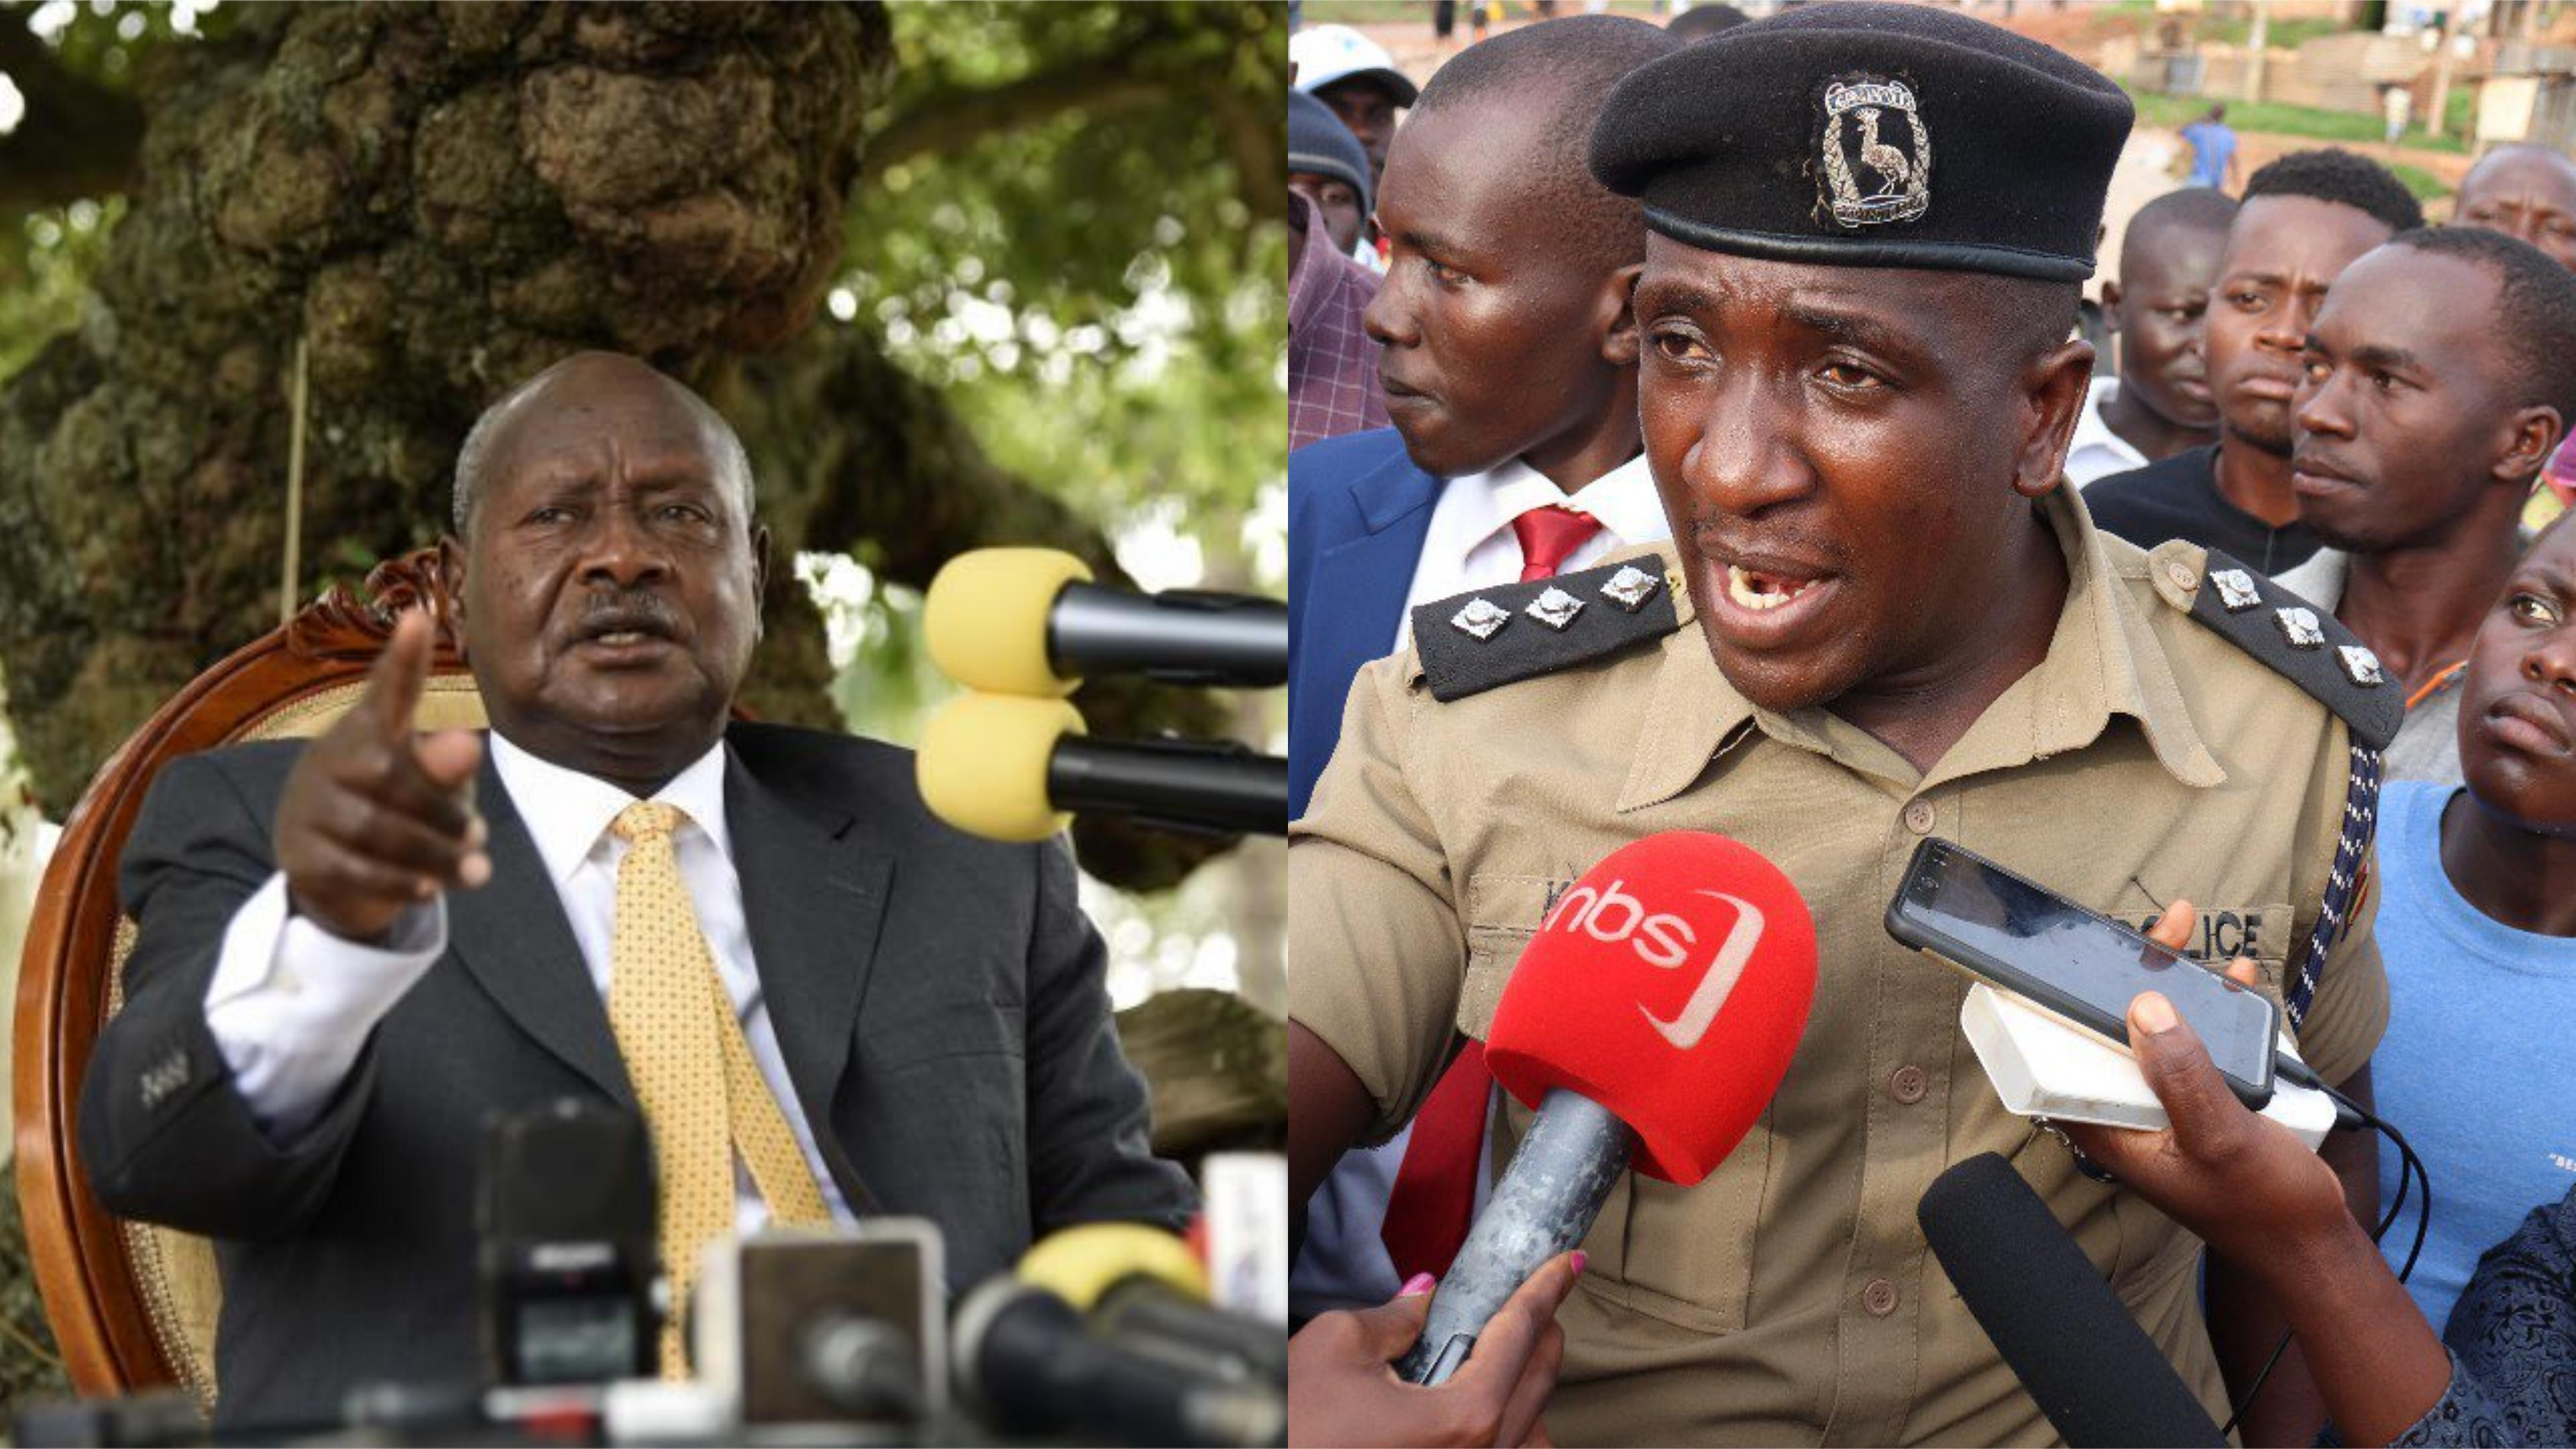 Residents in Bulenga expressed dissatisfaction to the President Museveni as he visited the crime scene of ex - Buyende DPC Muhammad Kirumira subsequent to his assassination September 08 (FILE PHOTO MONTAGE)